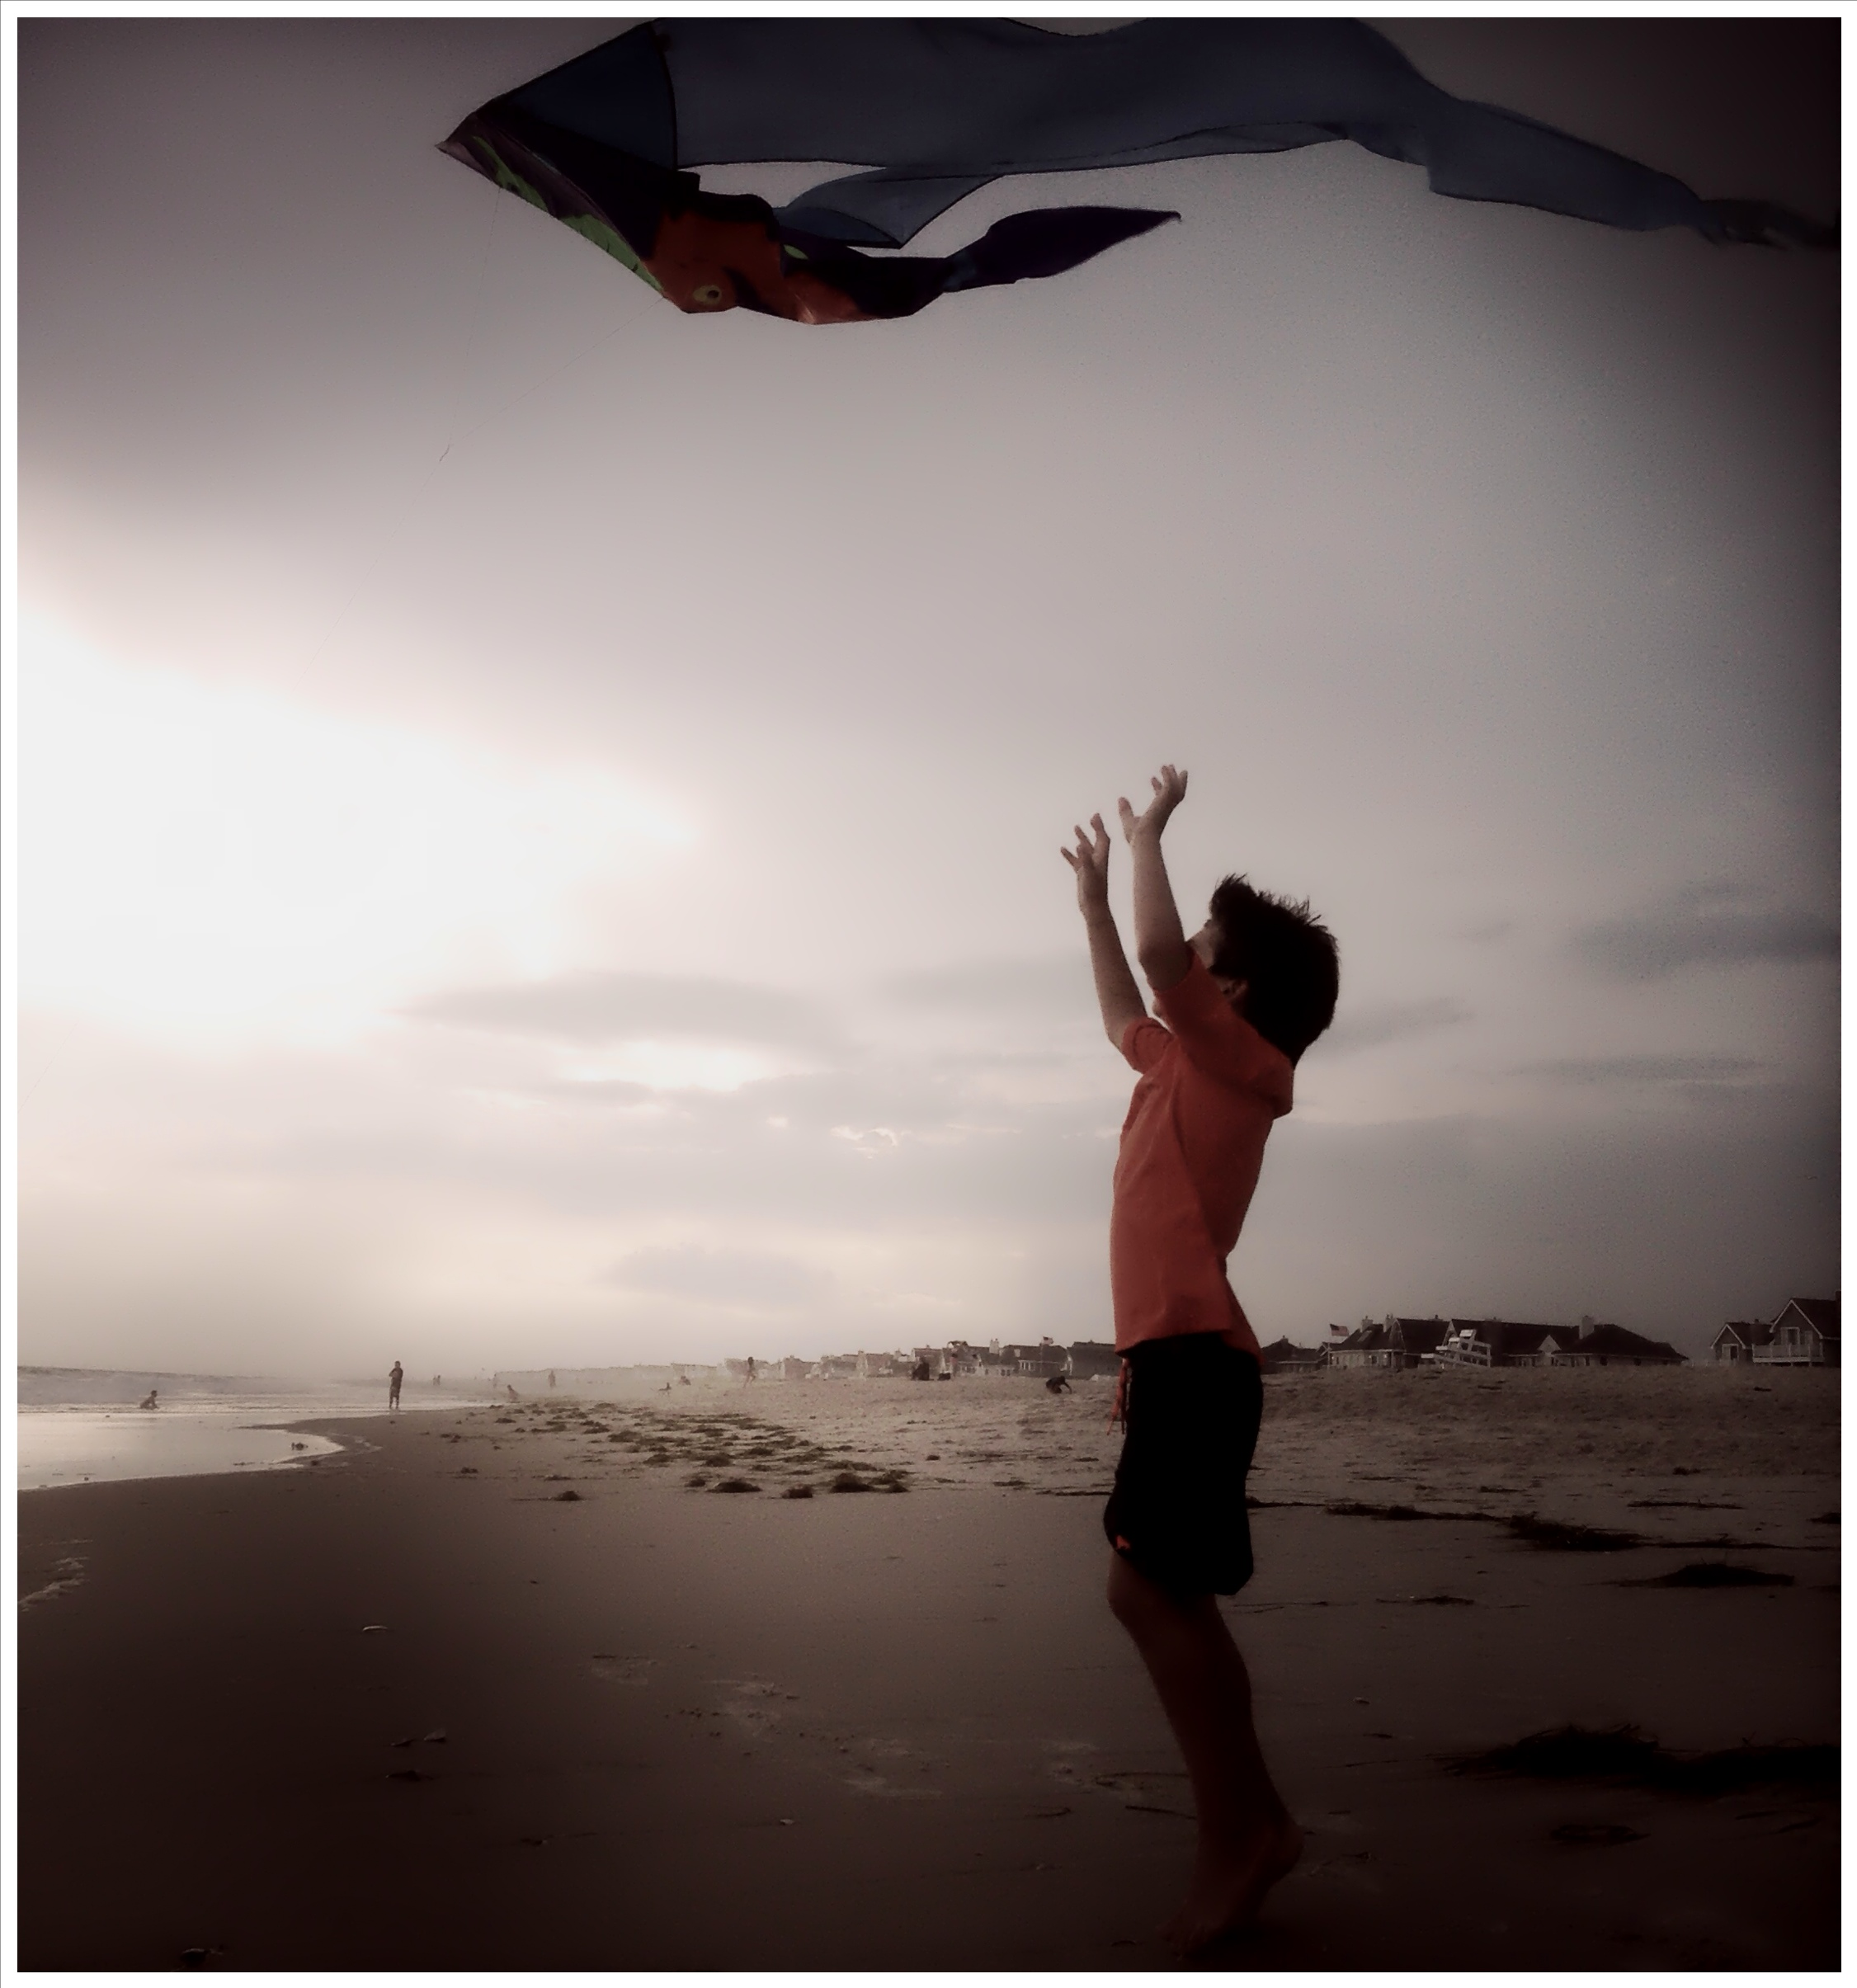 Boy Reaching for Kite